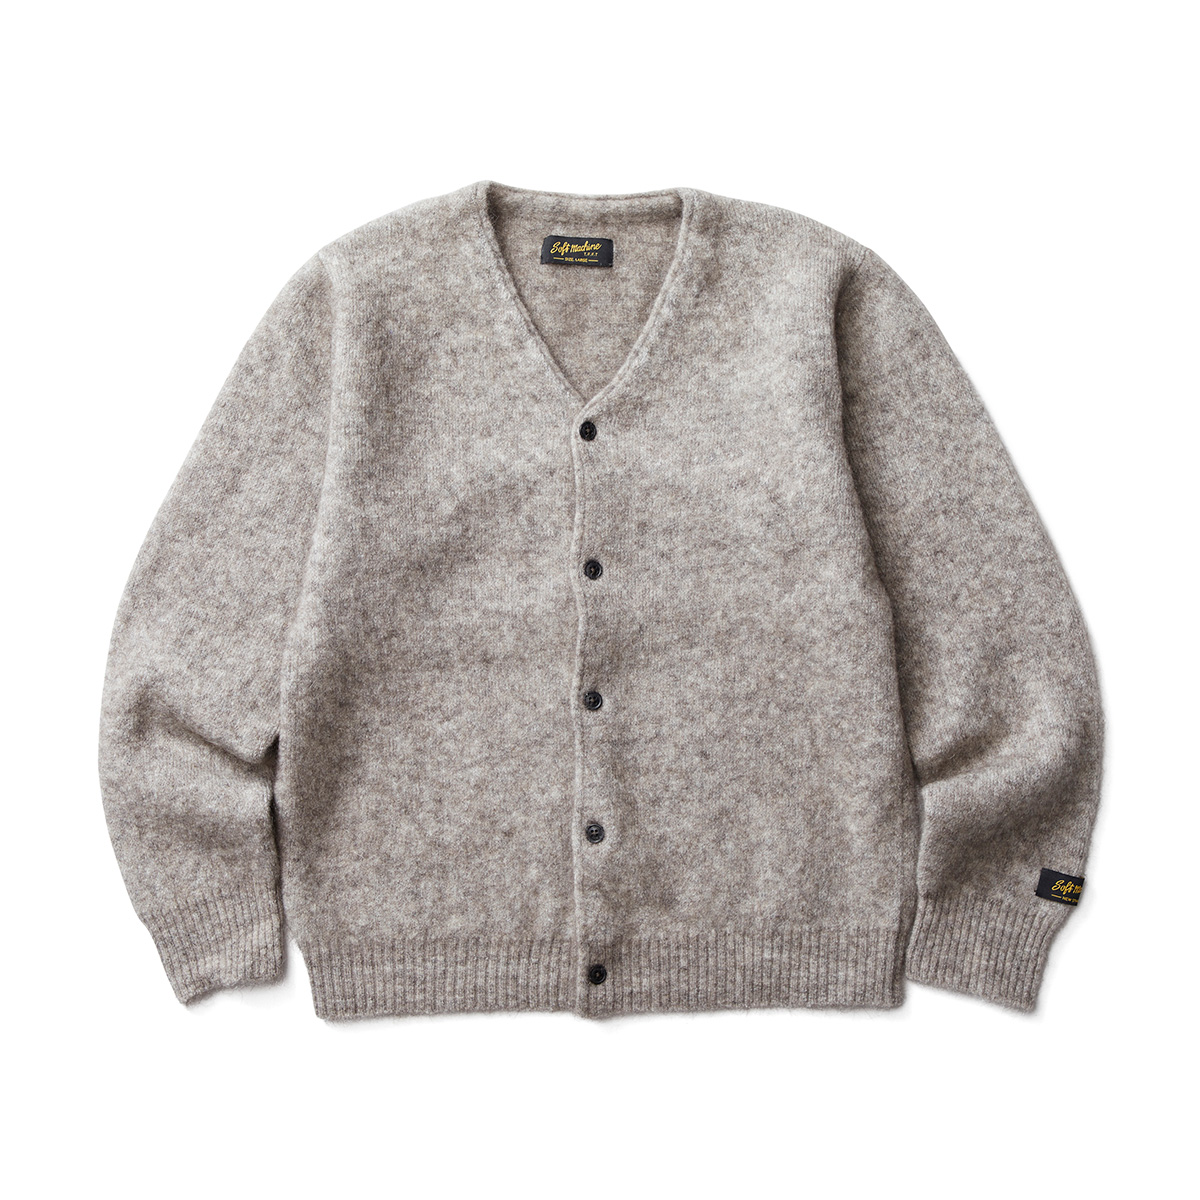 COSTELLO CARDIGAN